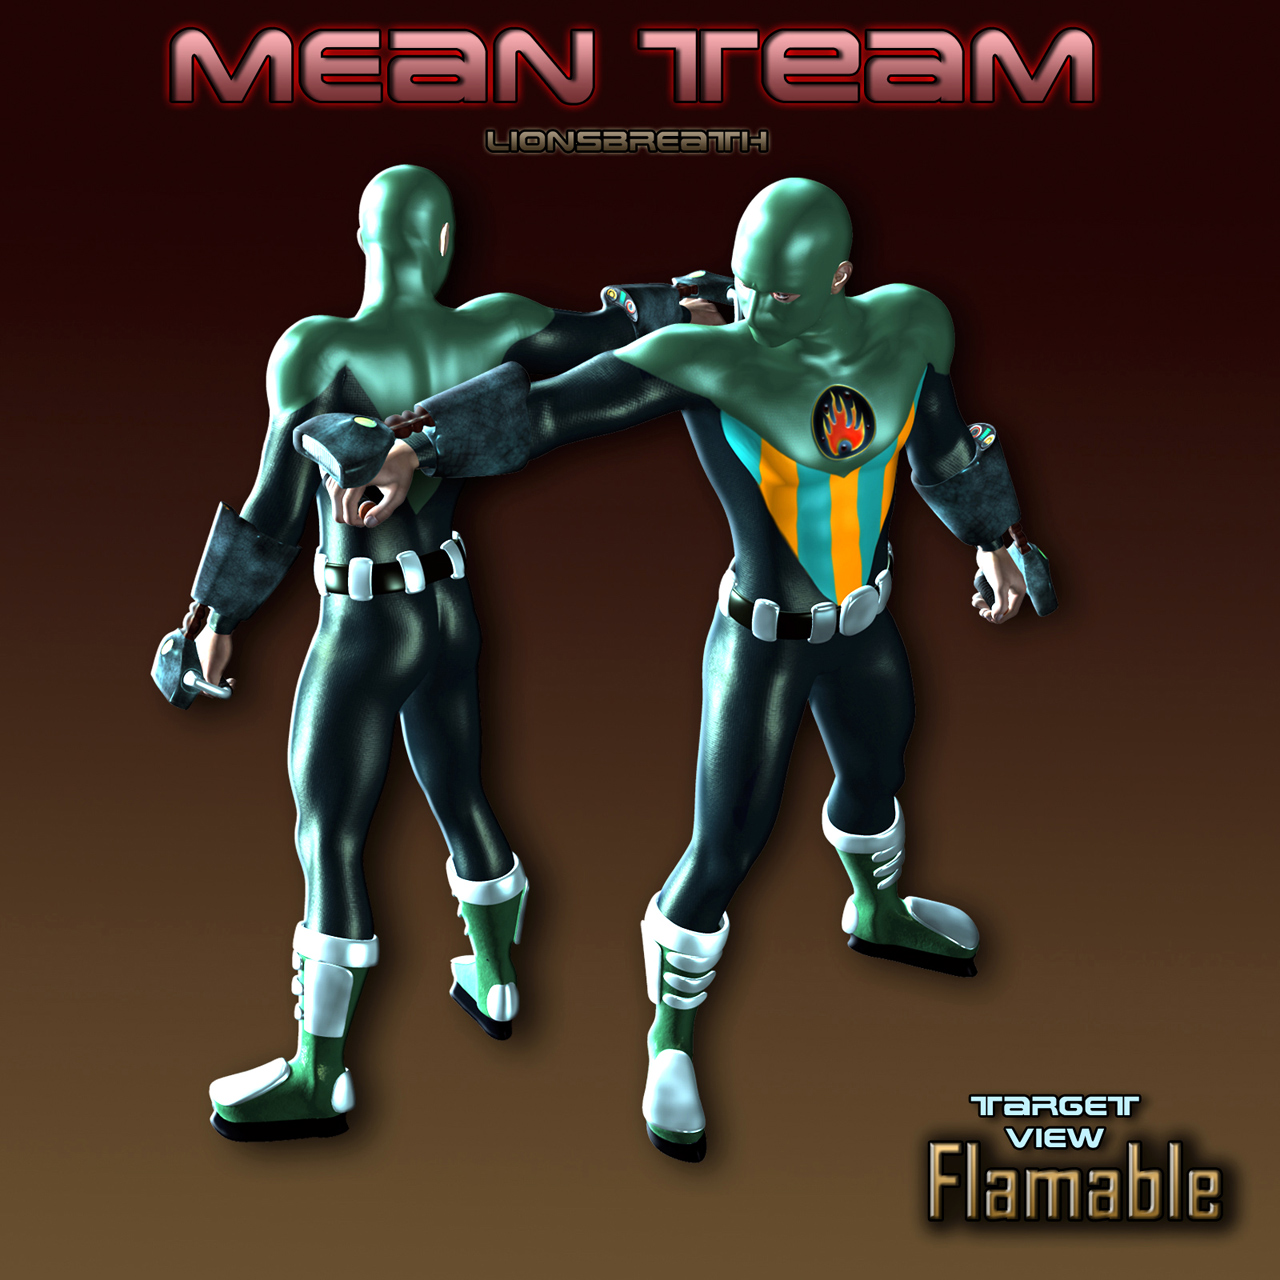 Mean Team Flamable